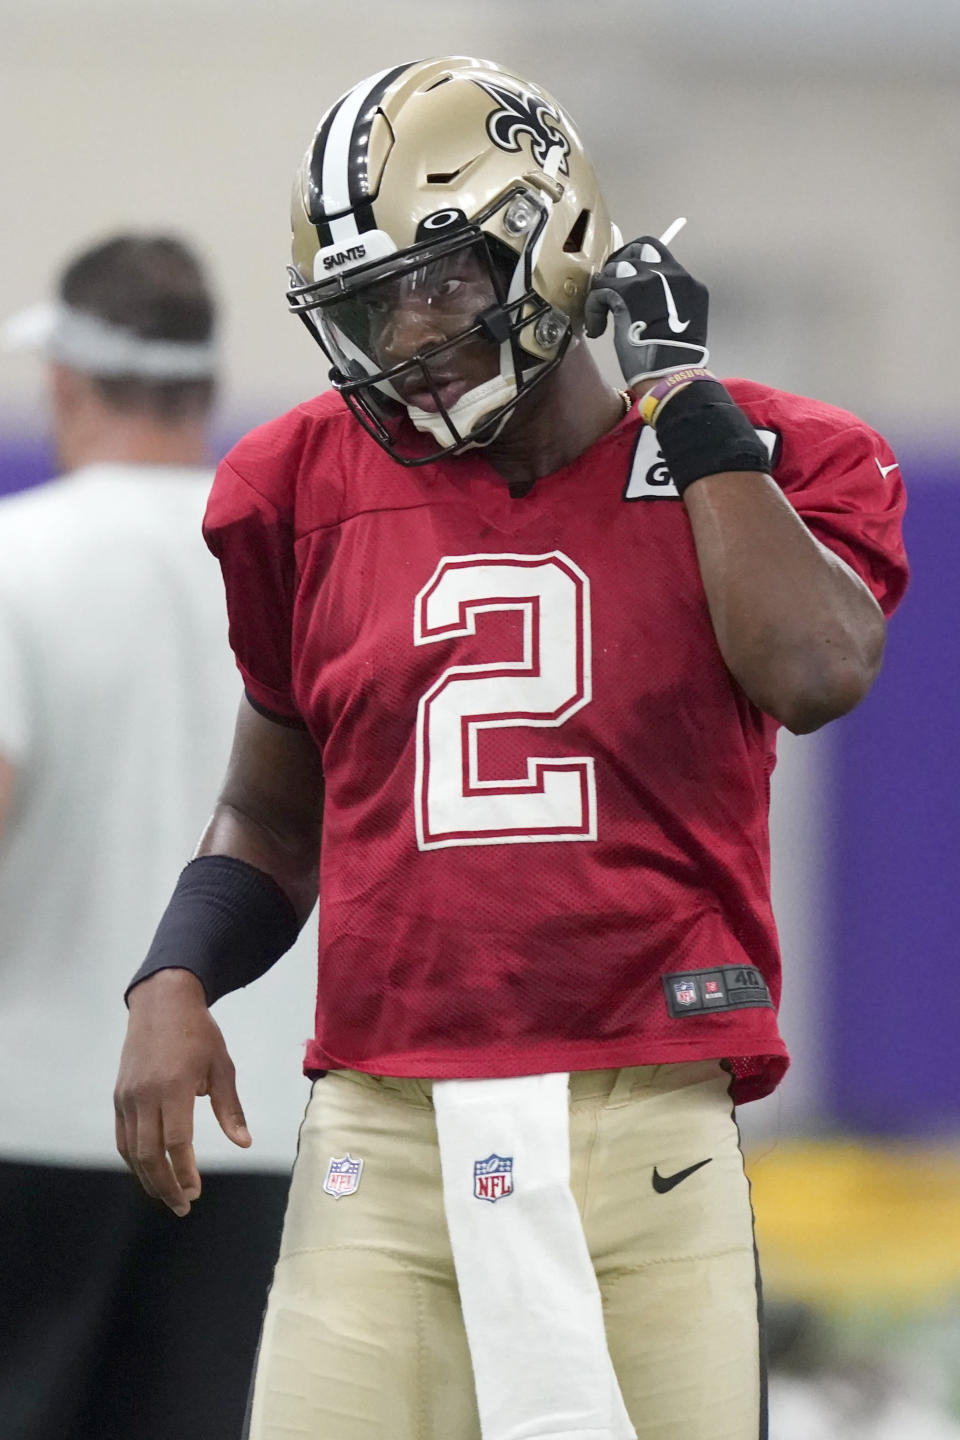 New Orleans Saints quarterback Jameis Winston (2) adjusts his helmet during NFL football practice in Fort Worth, Texas, Wednesday, Sept. 15, 2021. (AP Photo/LM Otero)